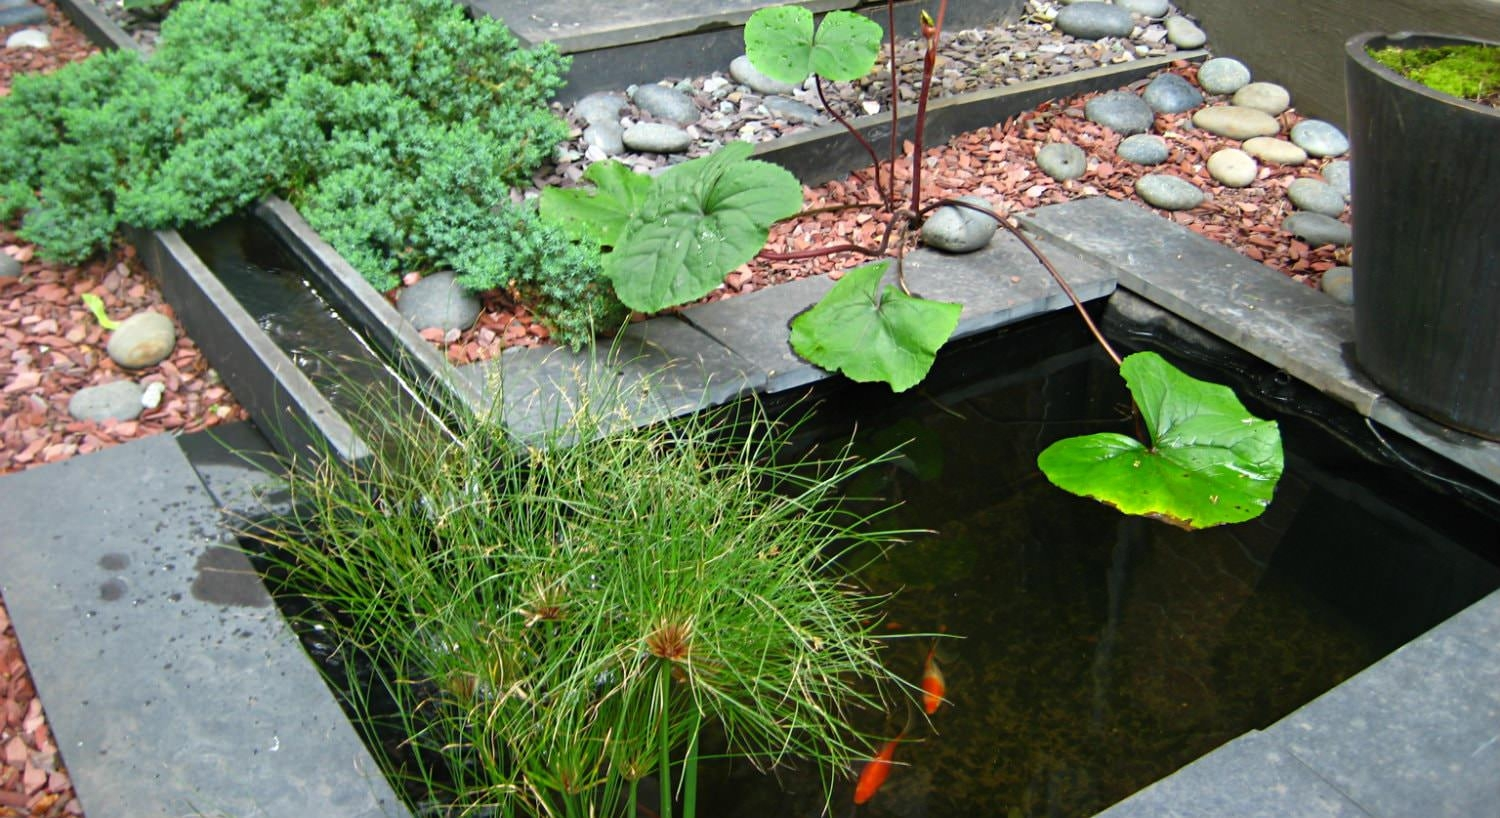 Small slate koi pond with green lili pad surrounded by grey and clay colored stones